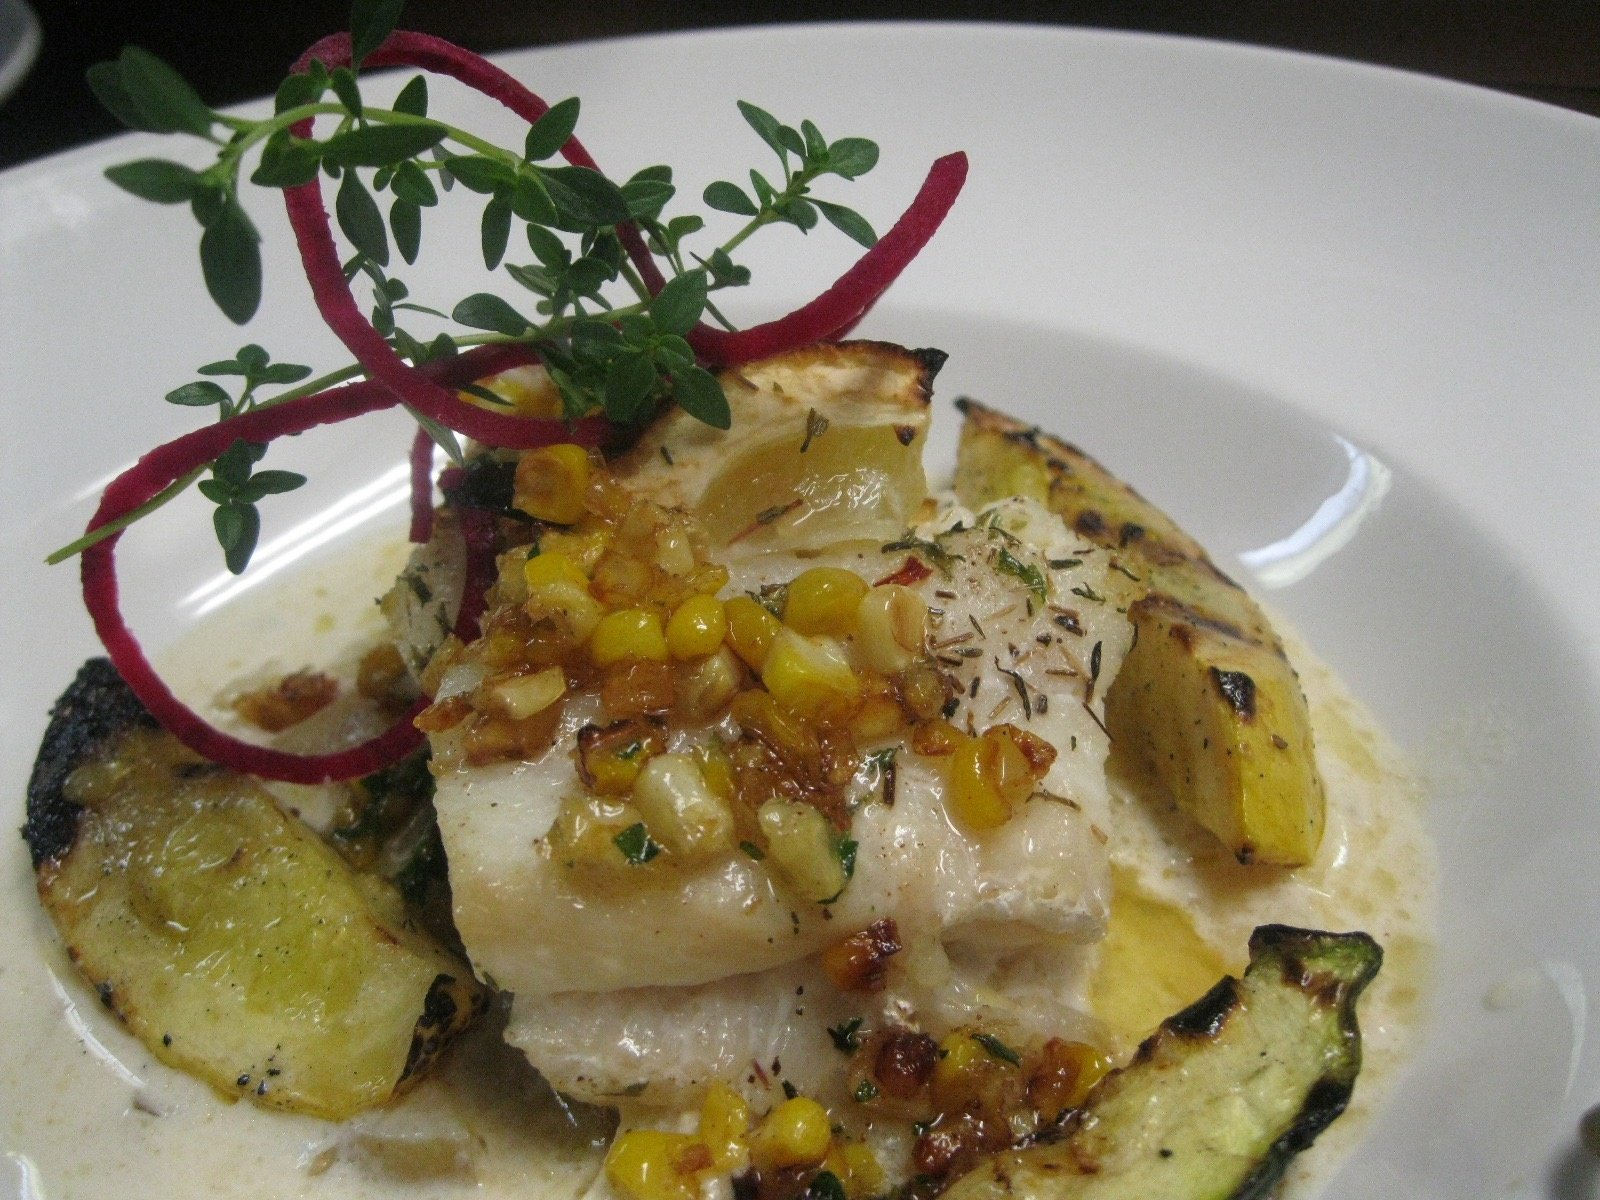 Grilled east coast halibut with a deconstructed new england chowder